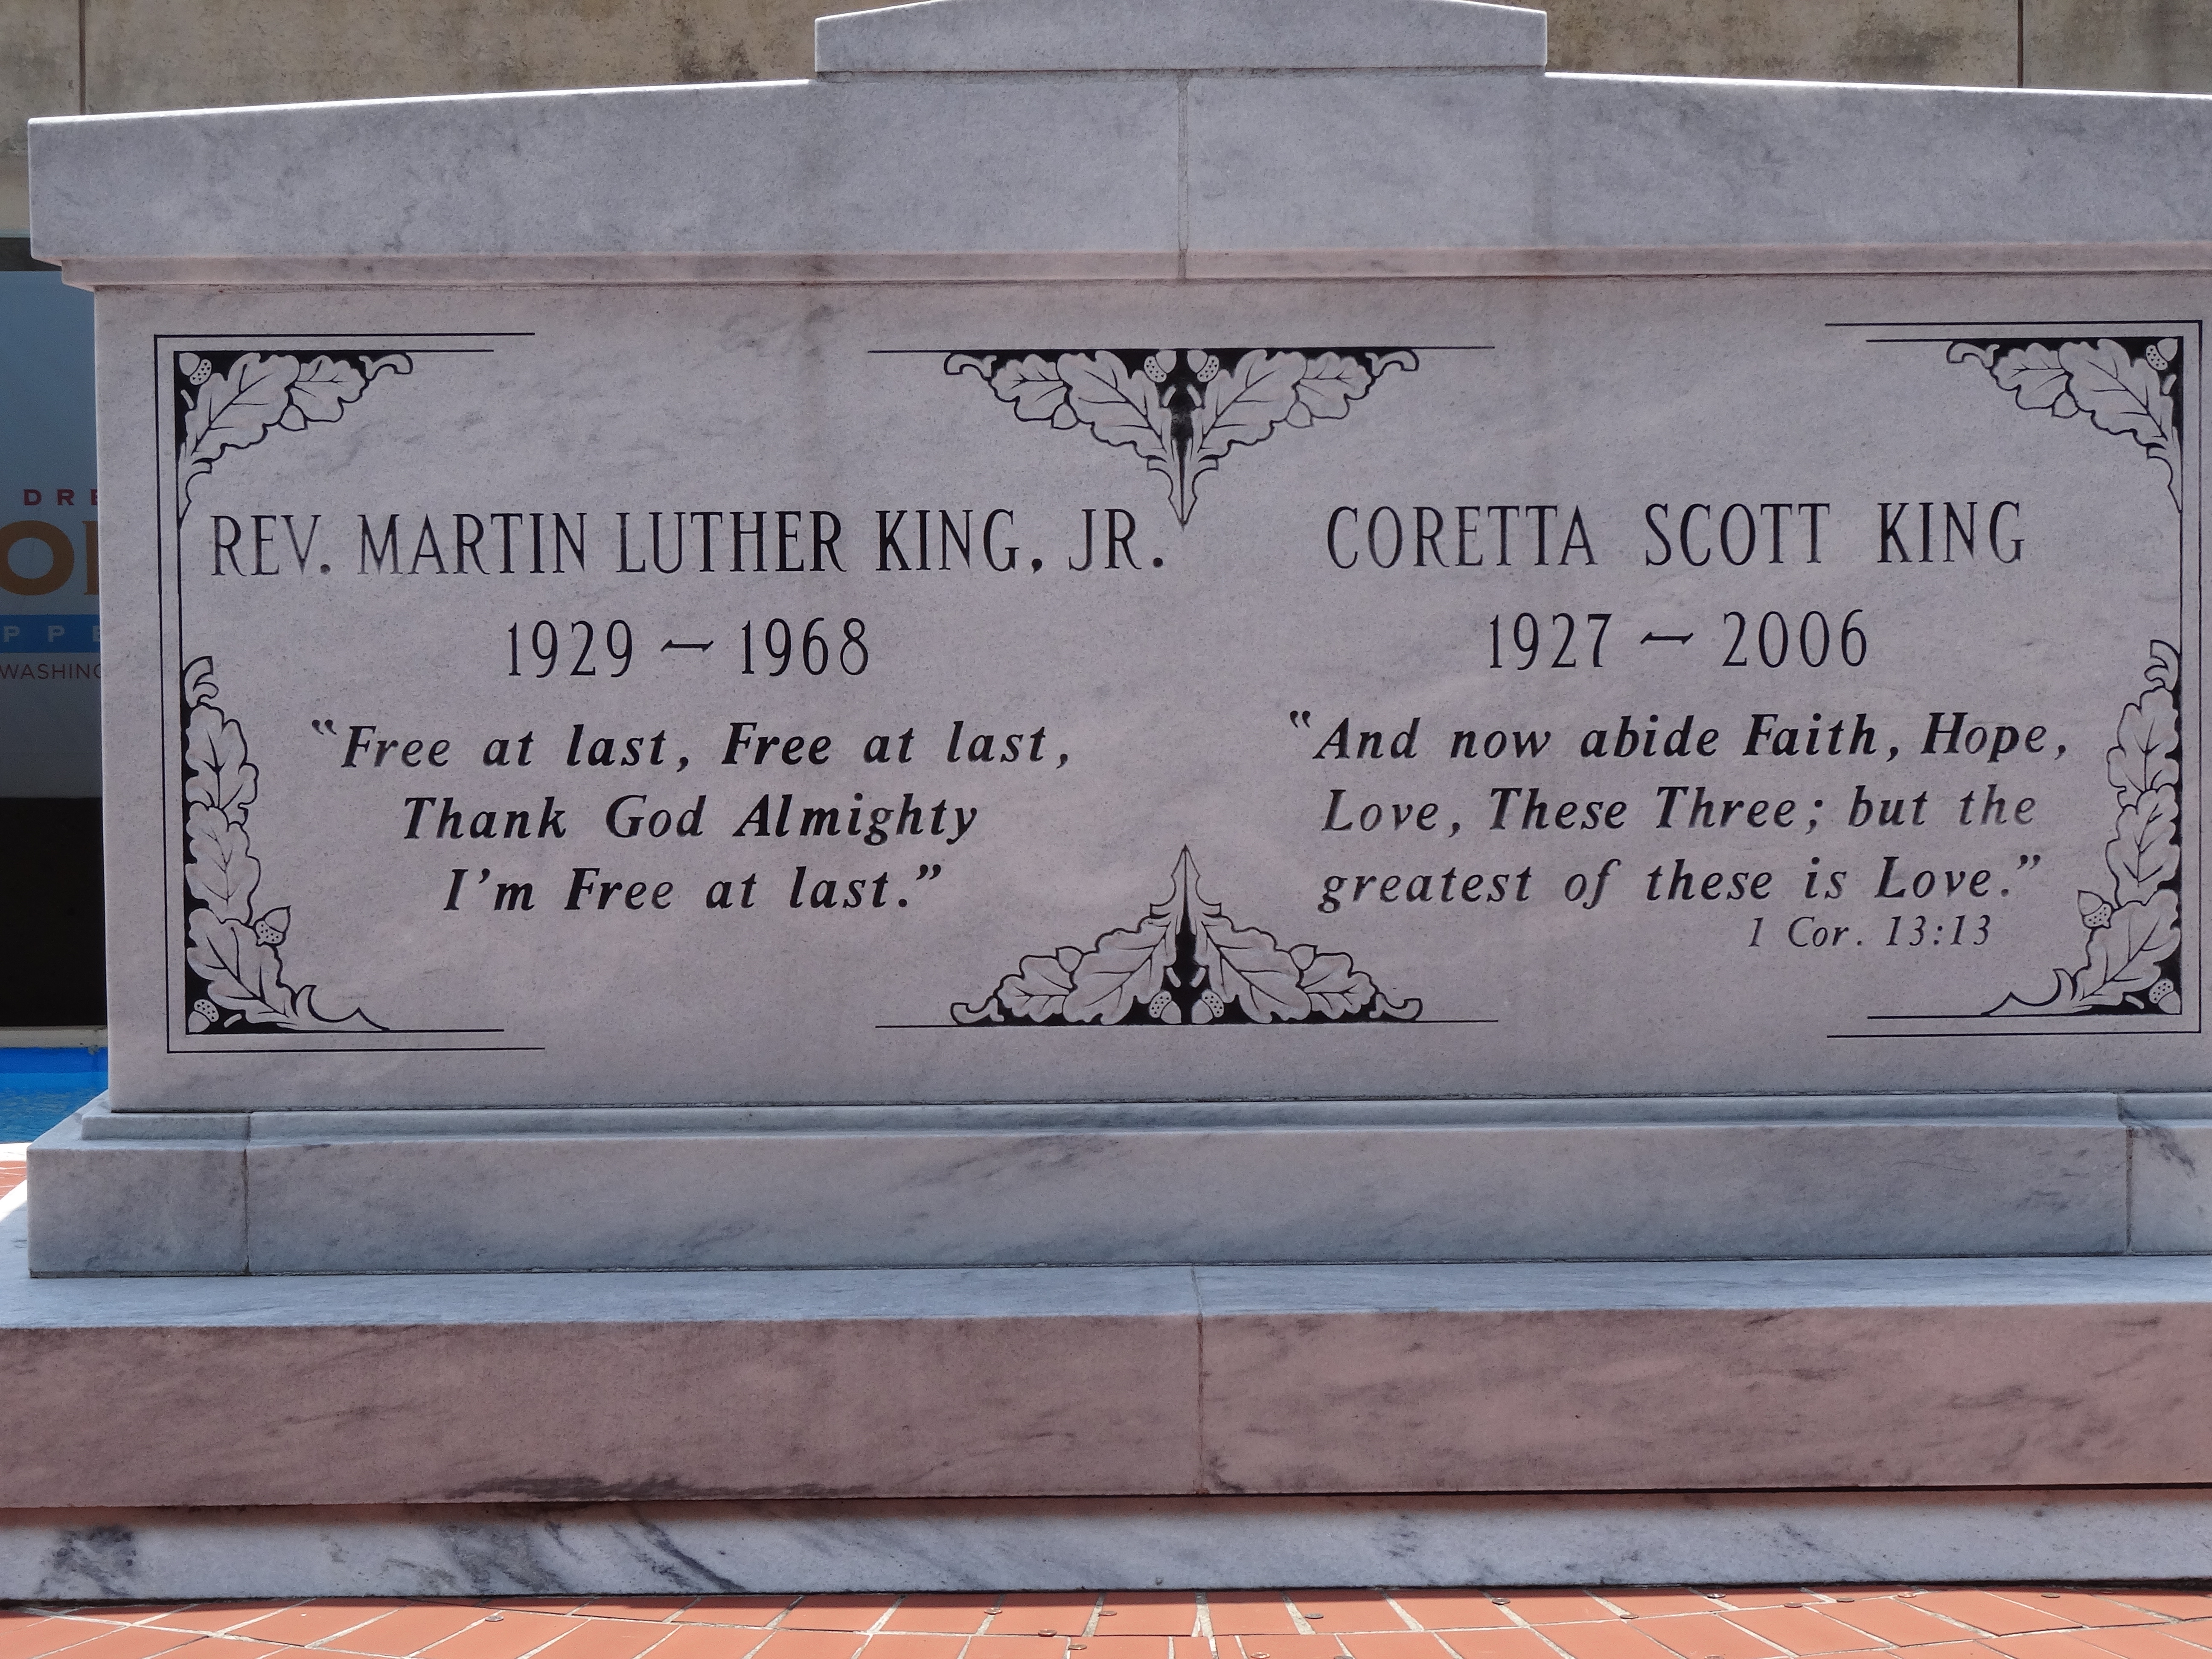 The factual and reasoned approaches of martin luther king jr